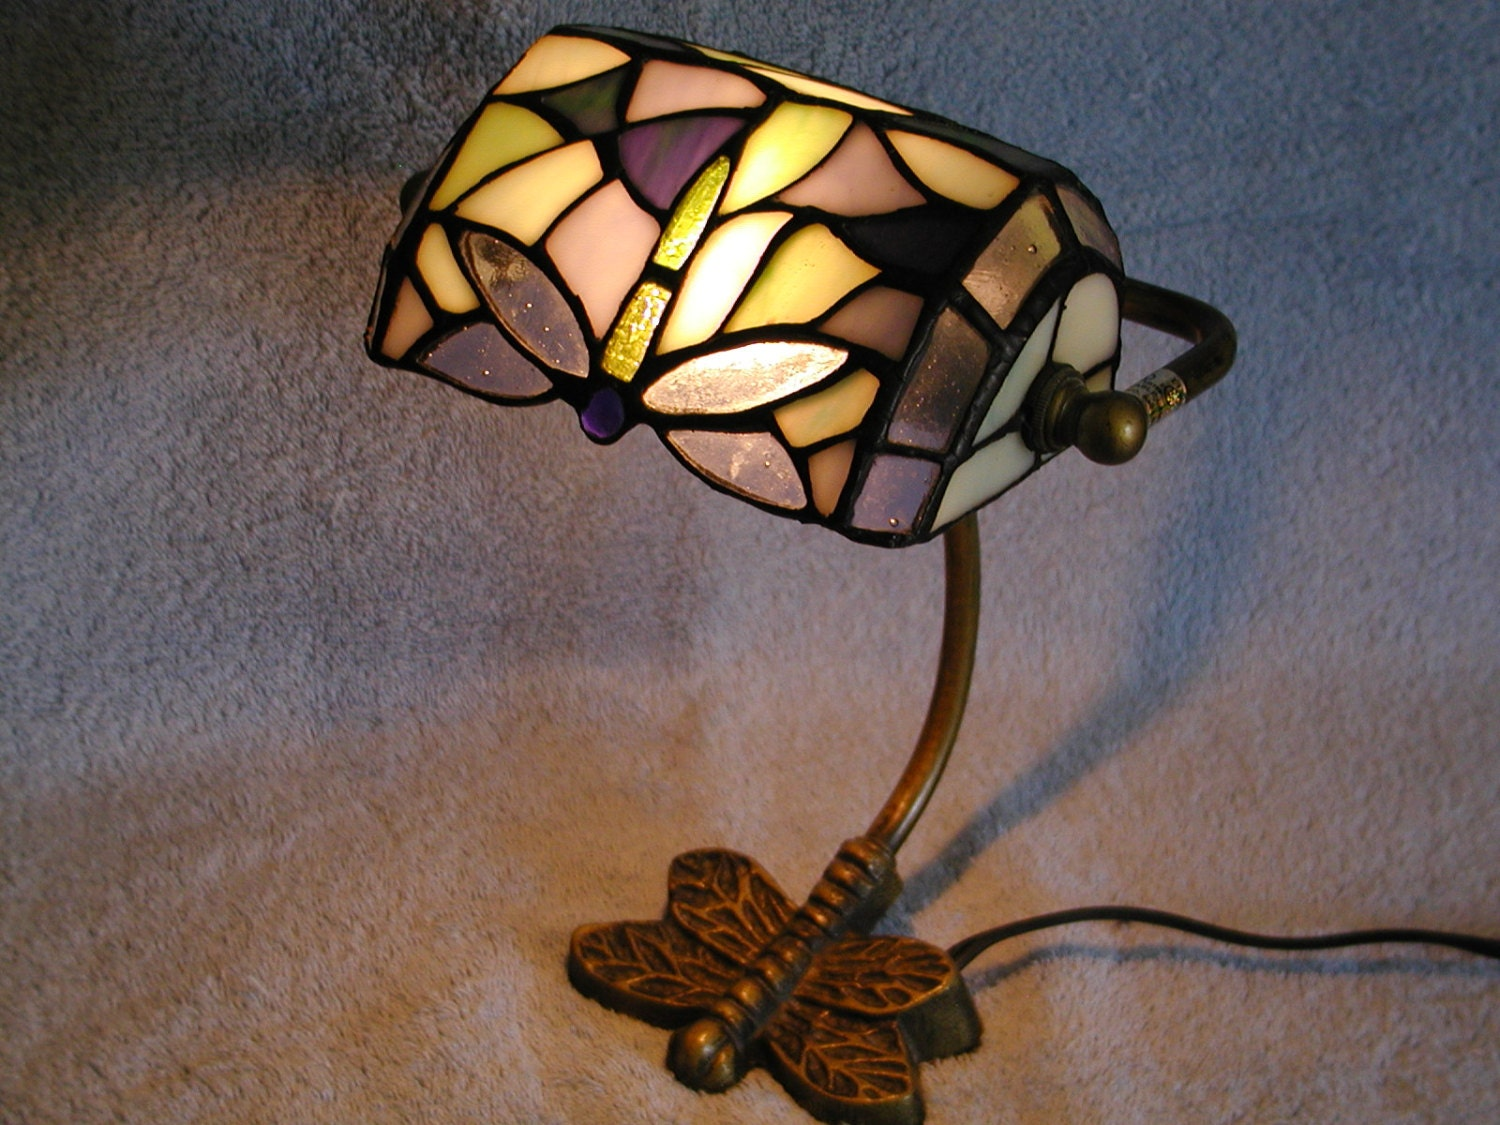 bankers lamp dragonfly motif stained glass shade. Black Bedroom Furniture Sets. Home Design Ideas